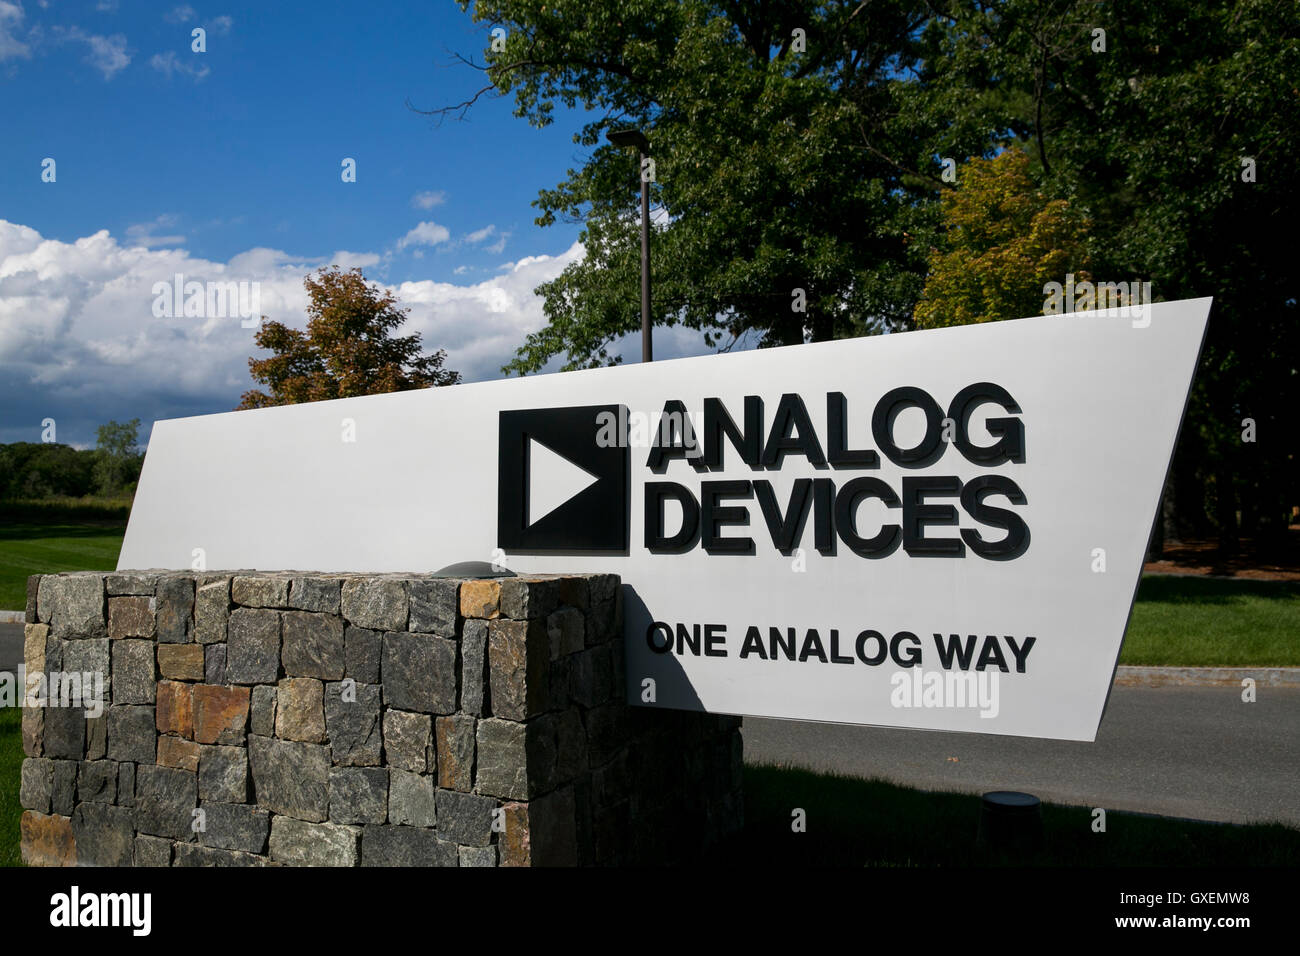 A logo sign outside of the headquarters of Analog Devices, Inc., in Norwood, Massachusetts on August 14, 2016. - Stock Image